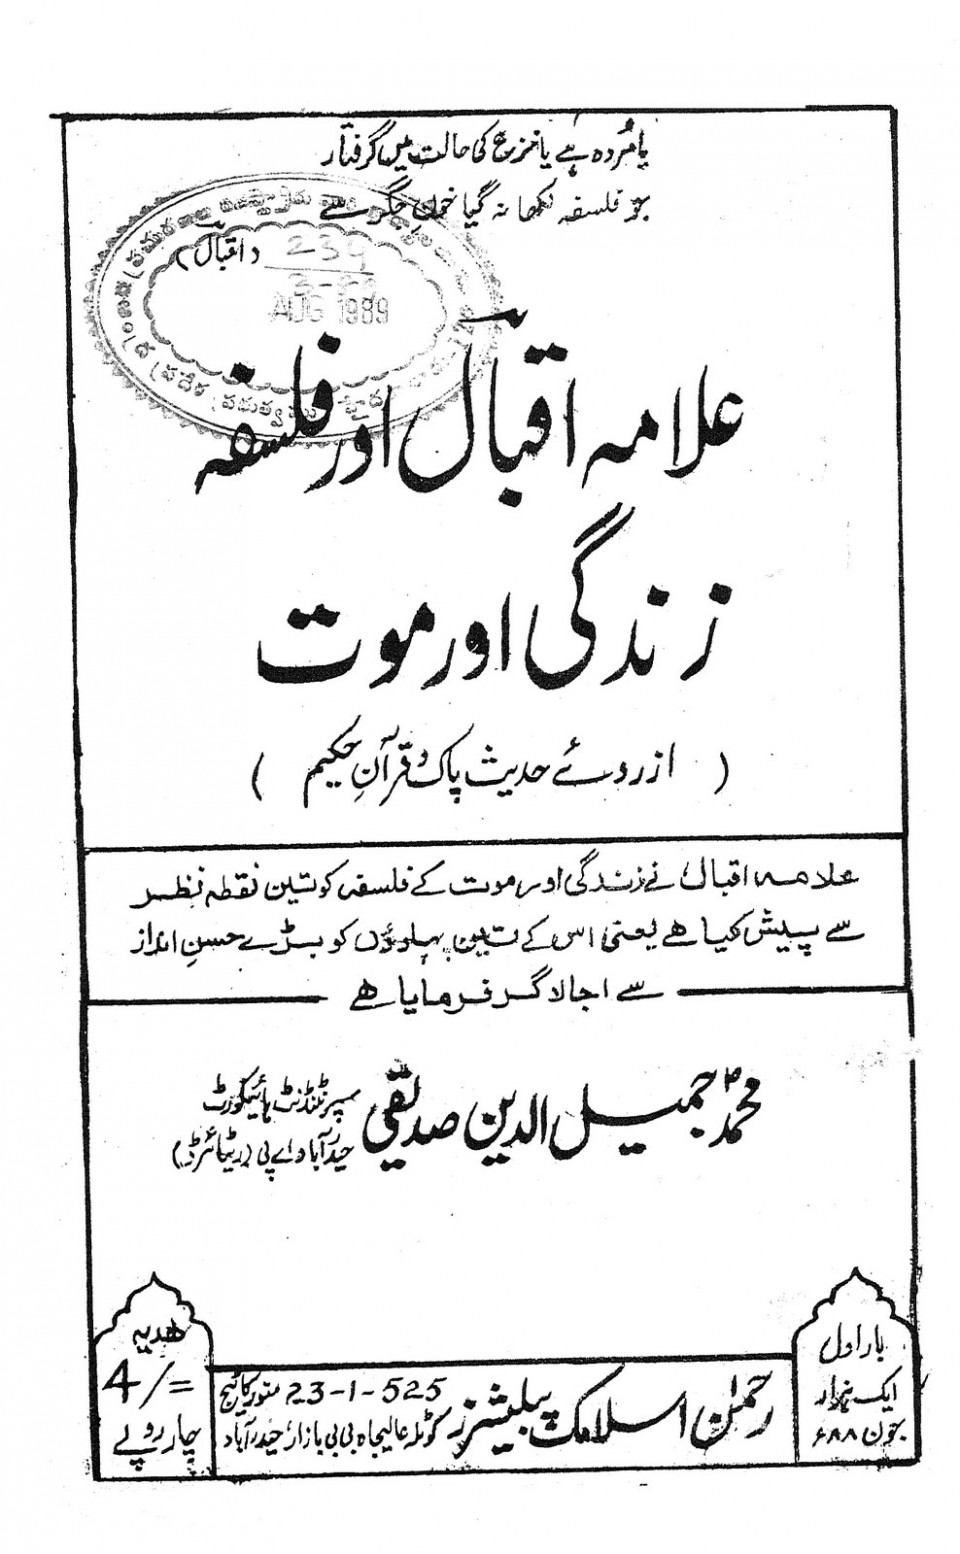 015 Allamaiqbalaurfalsafa Zindagi Aur Maut Urdu Essay Allama Iqbal Dreaded On In For Class 10 With Poetry Ka Shaheen Headings And 960